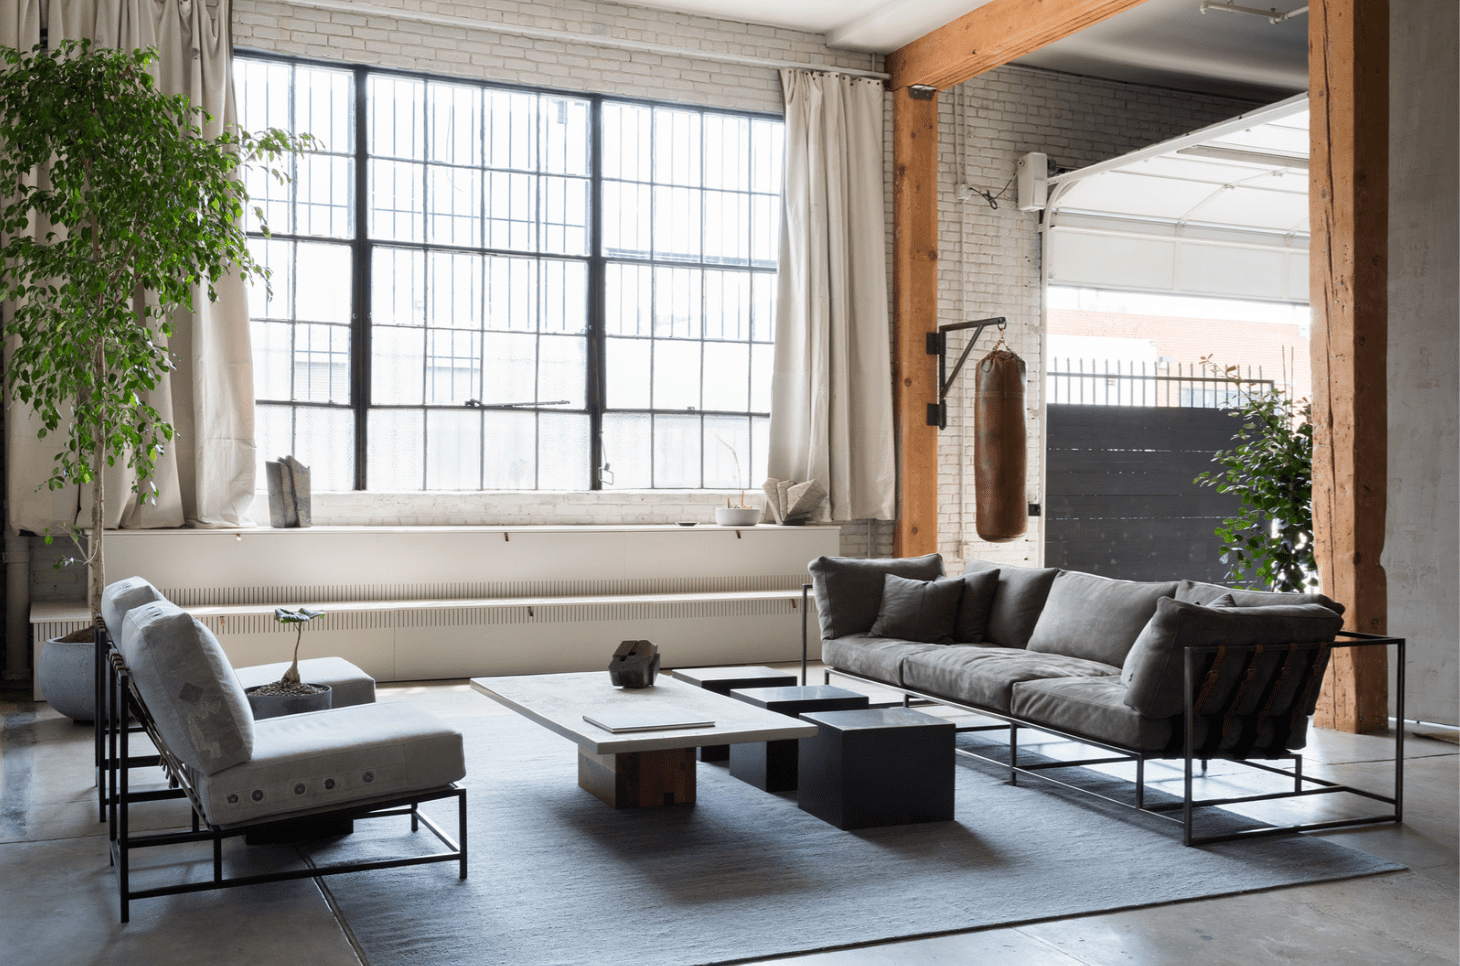 An industrial living room with cozy furniture and a punching bag